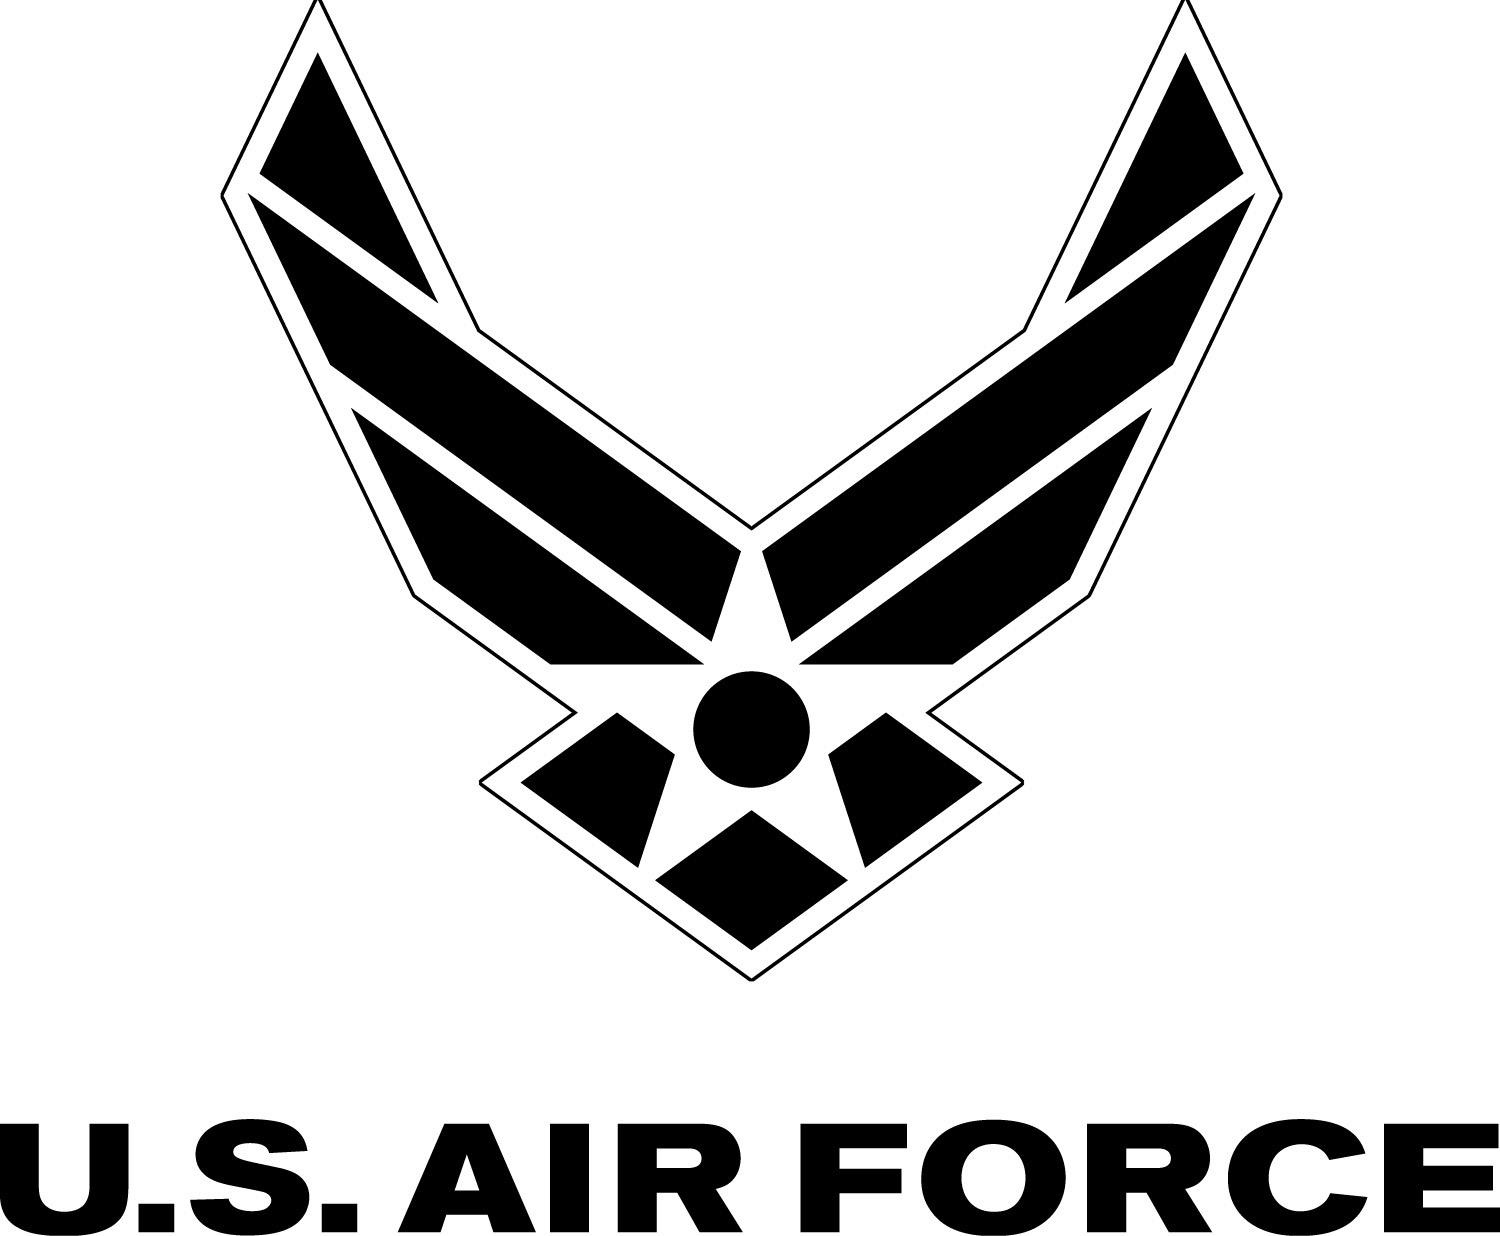 Air Force symbol with logotype, black with white outline